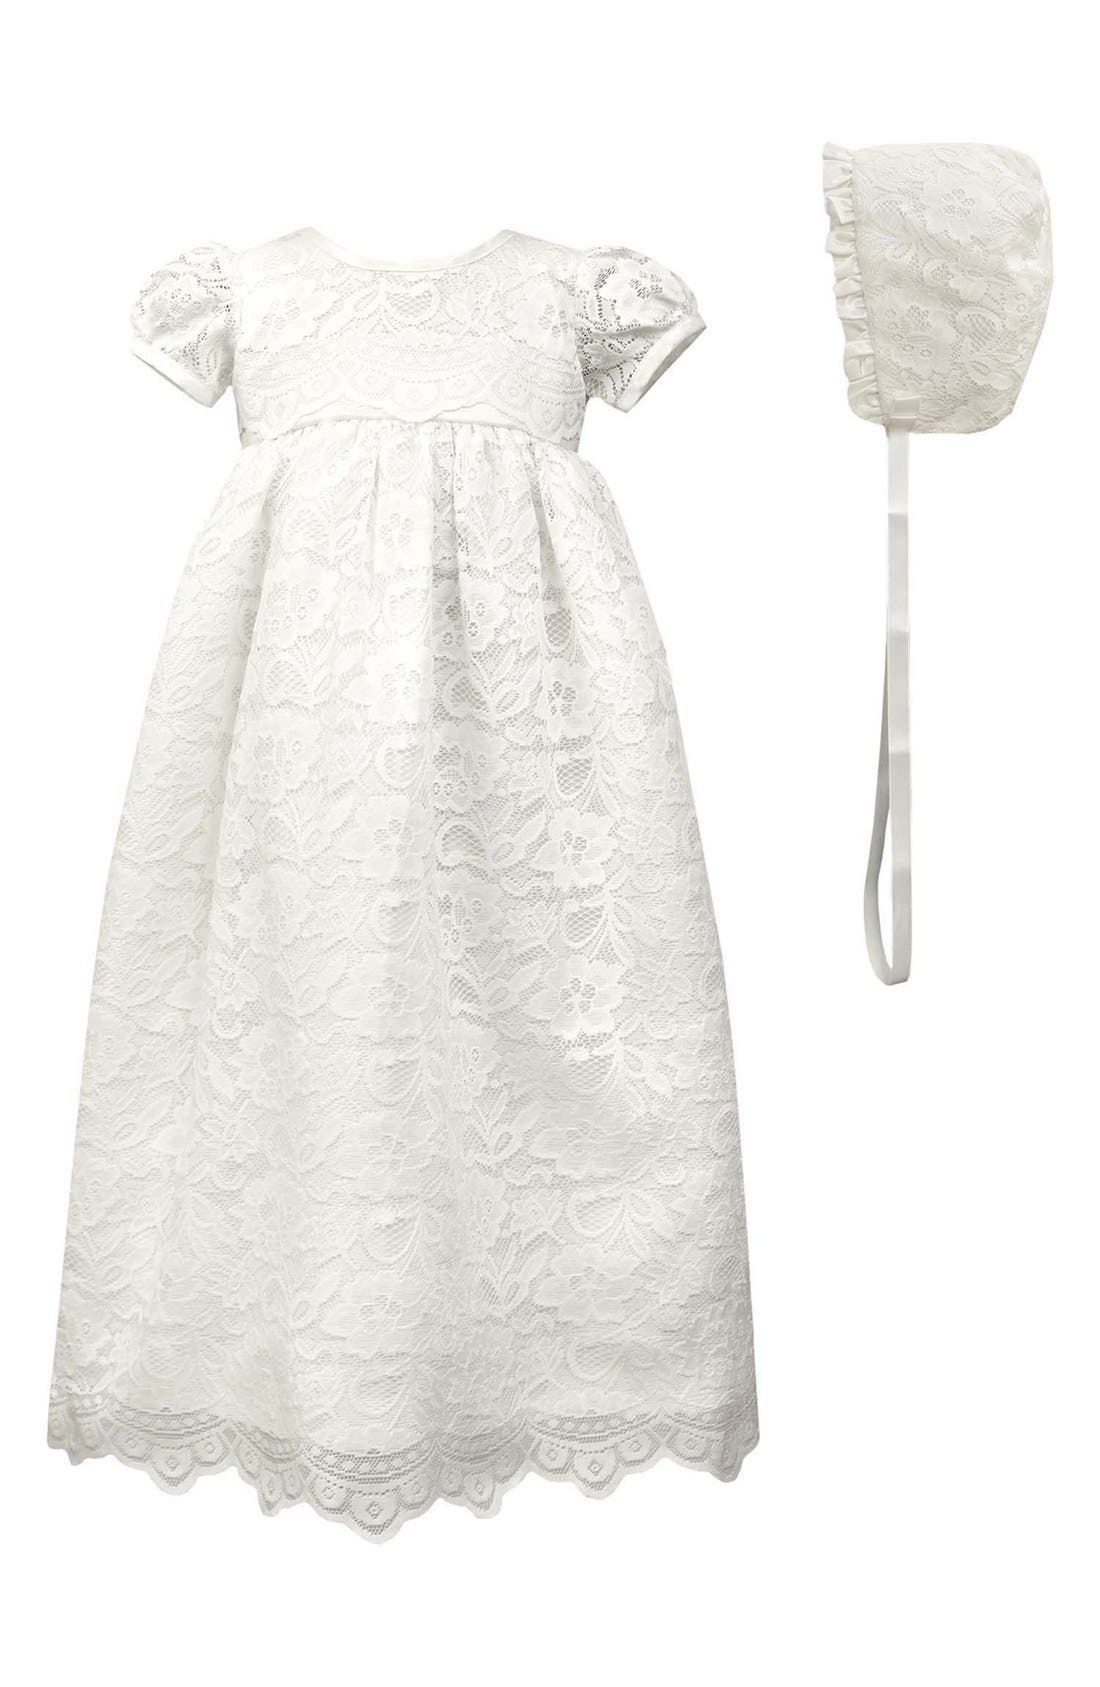 C.I. Castro & Co. Scalloped Lace Christening Gown & Bonnet (Baby)